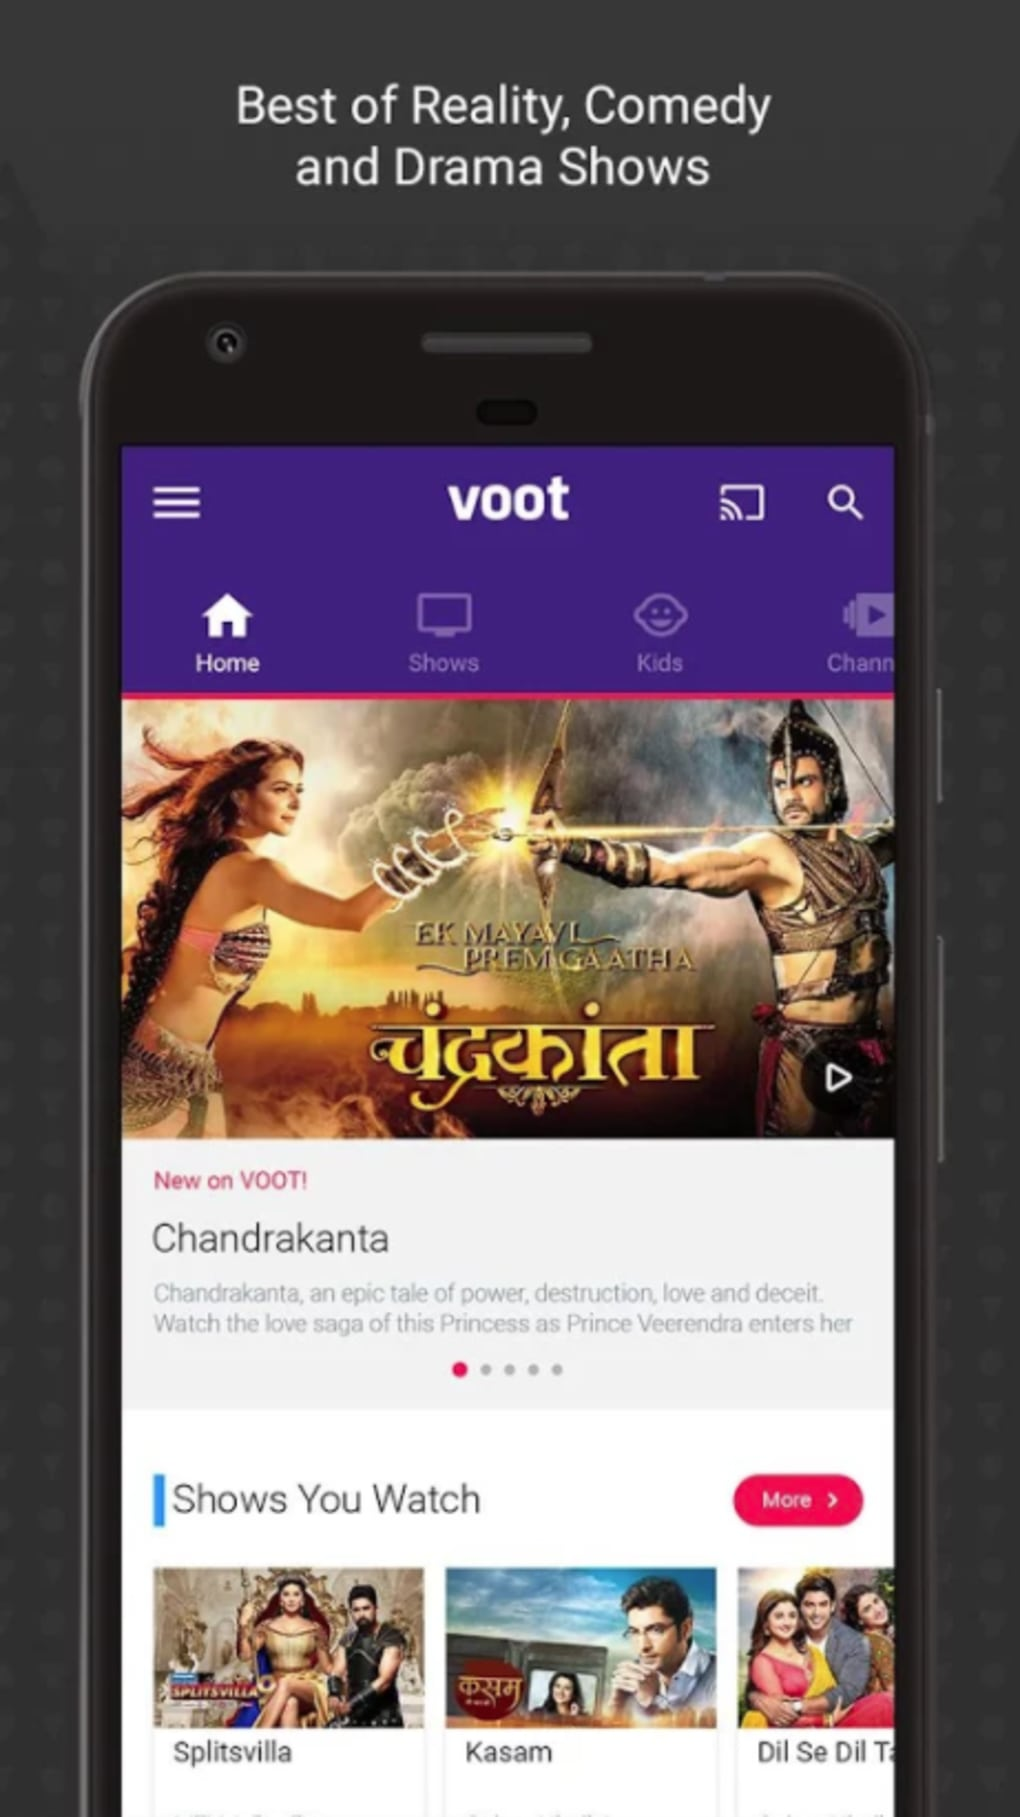 Voot TV for Android - Download